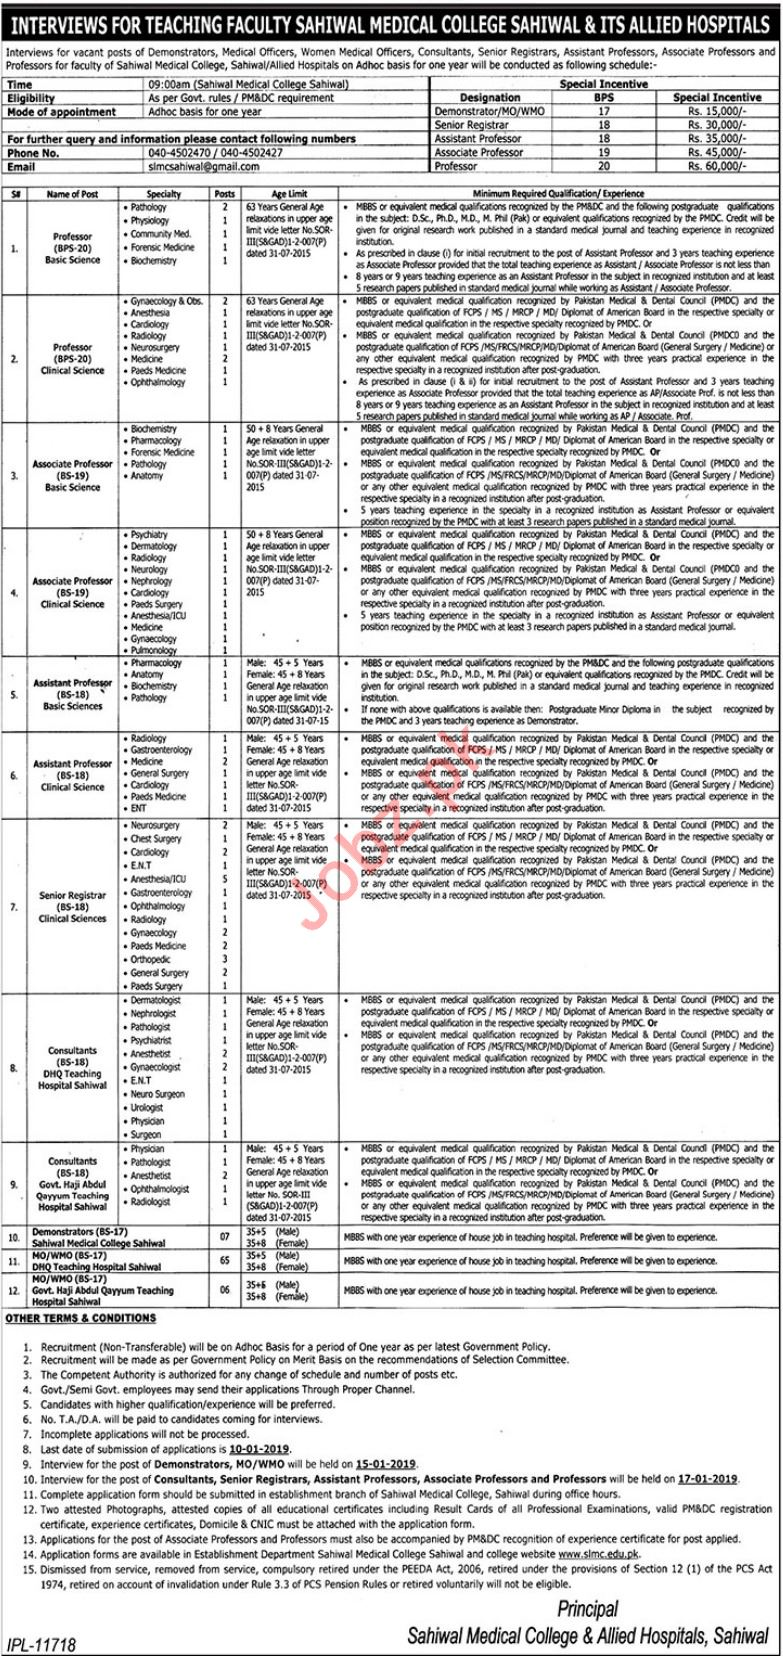 Sahiwal Medical College & Allied Hospitals Walk In Interview